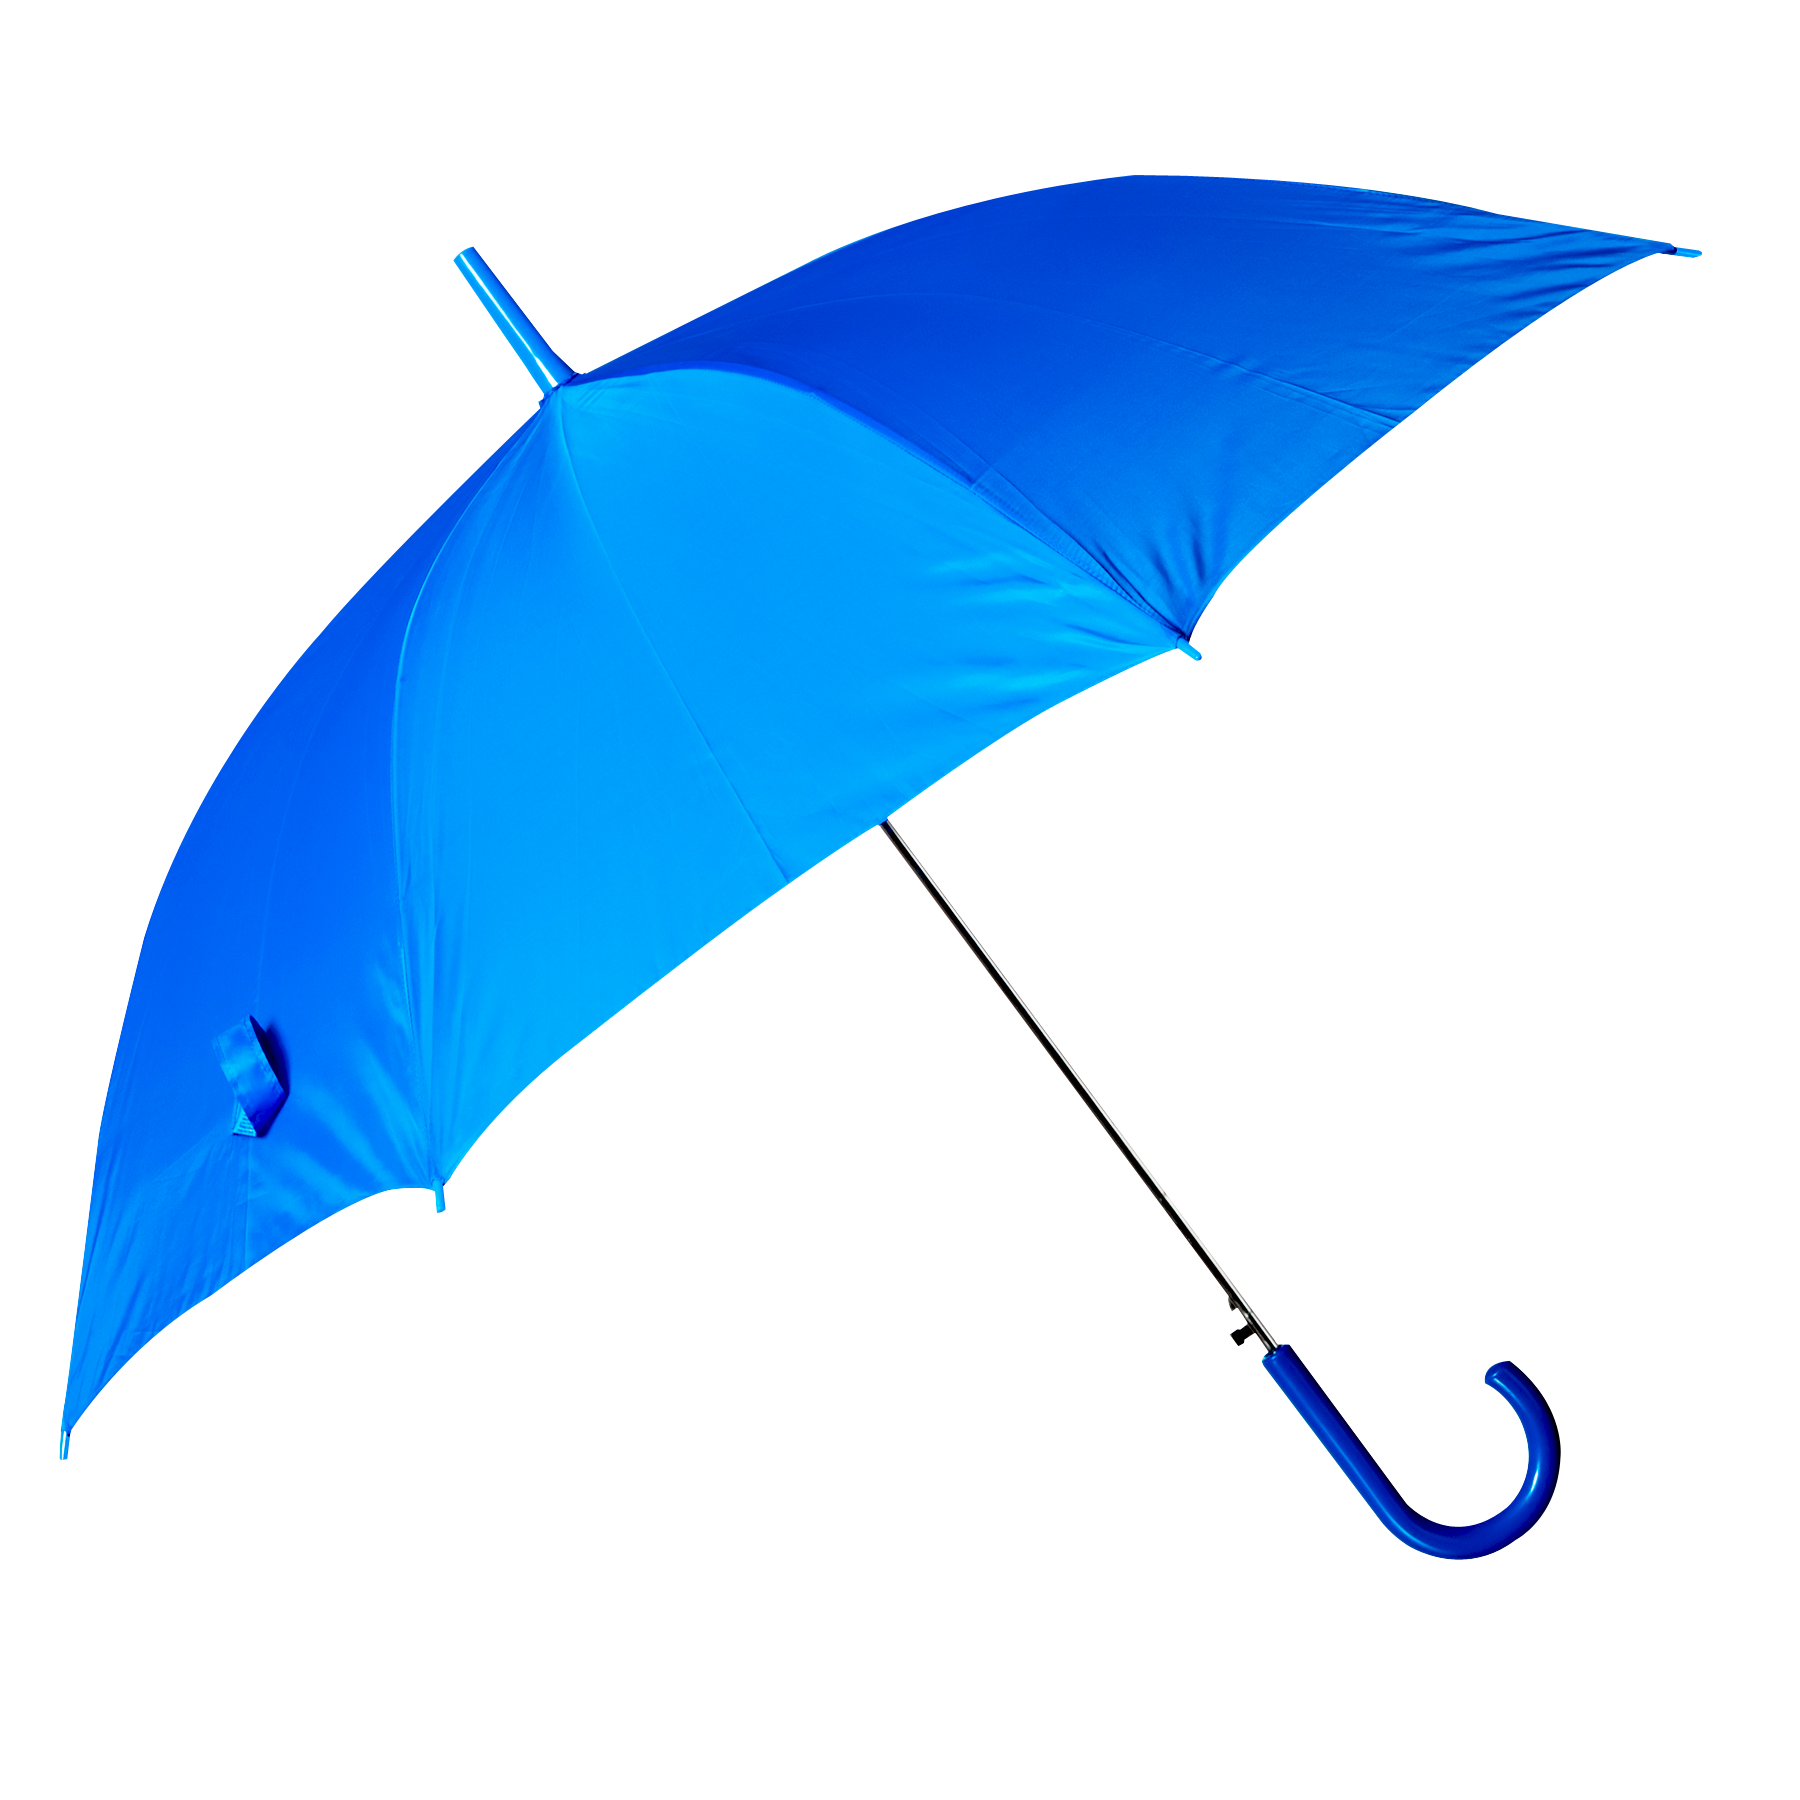 Blue Umbrella PNG - Umbrella PNG